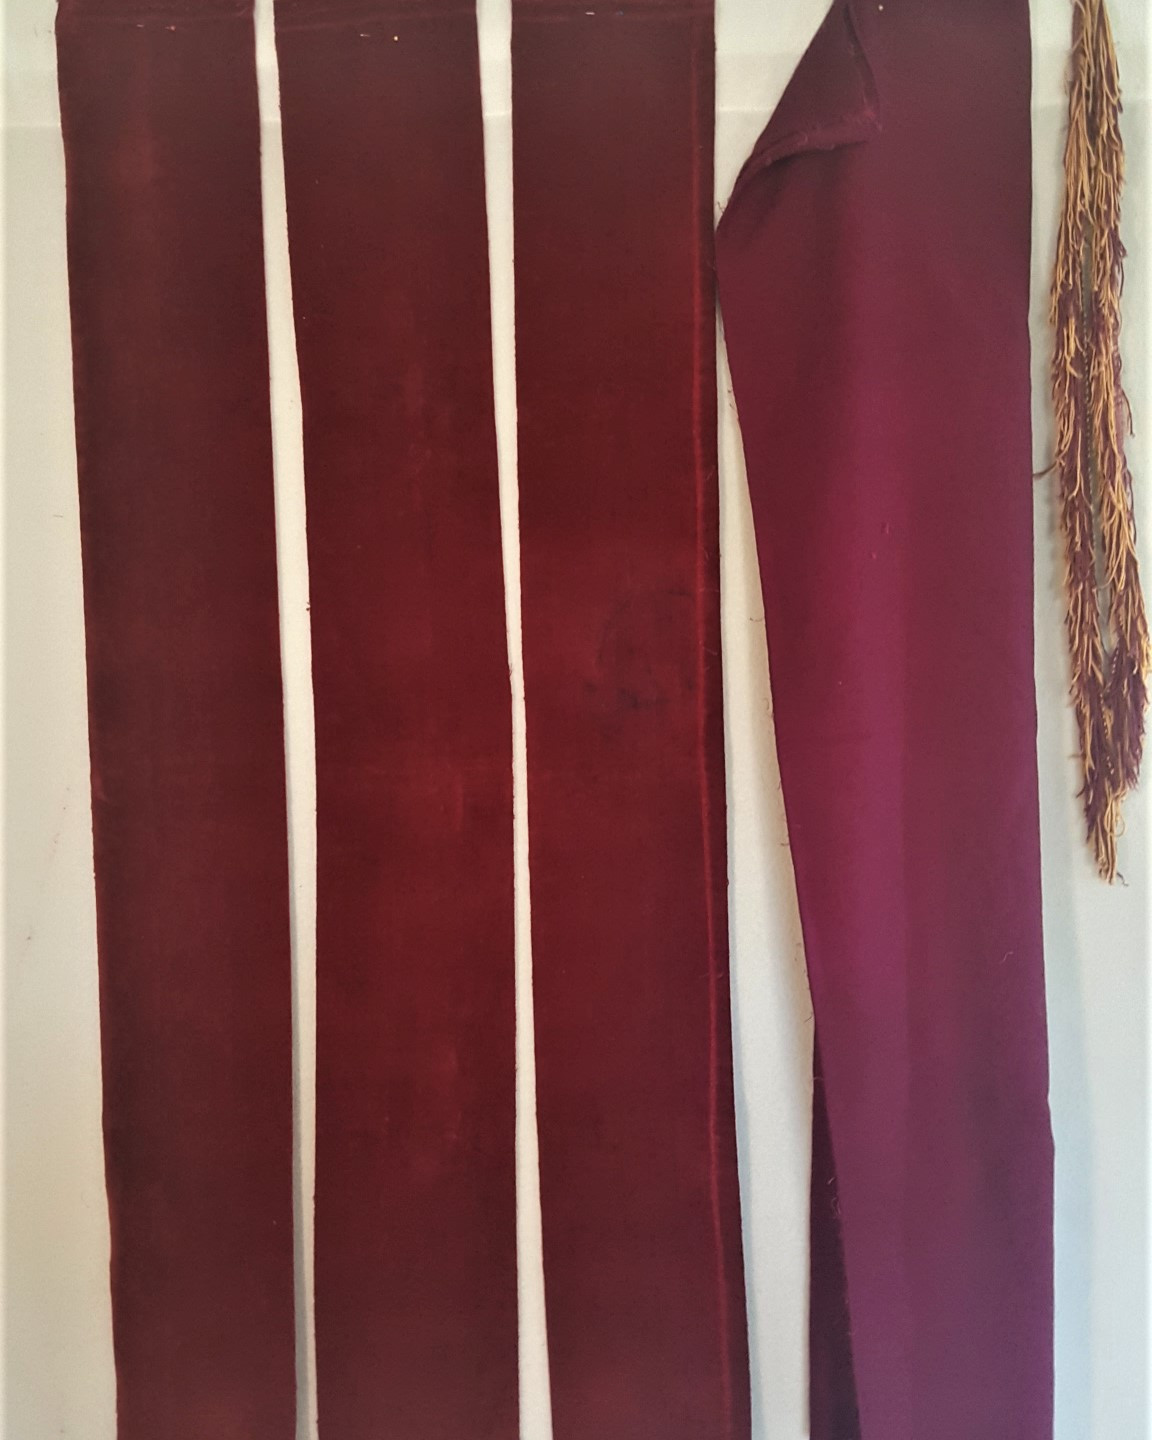 cloth and lining cut for stole